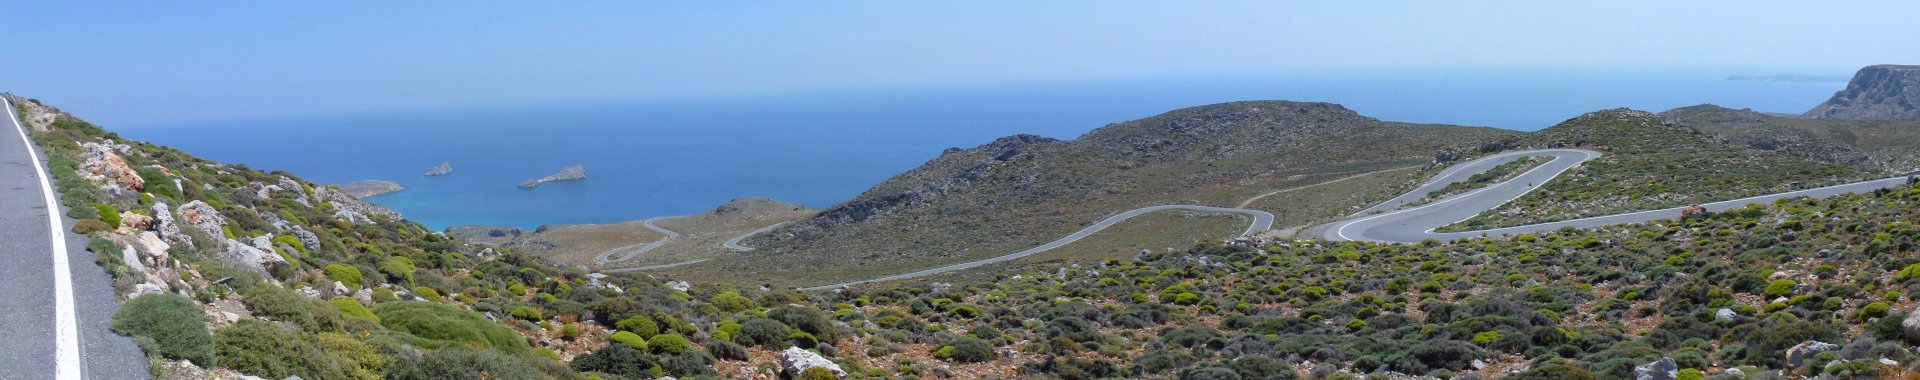 Downhill To Xerokambos - Eastern Crete